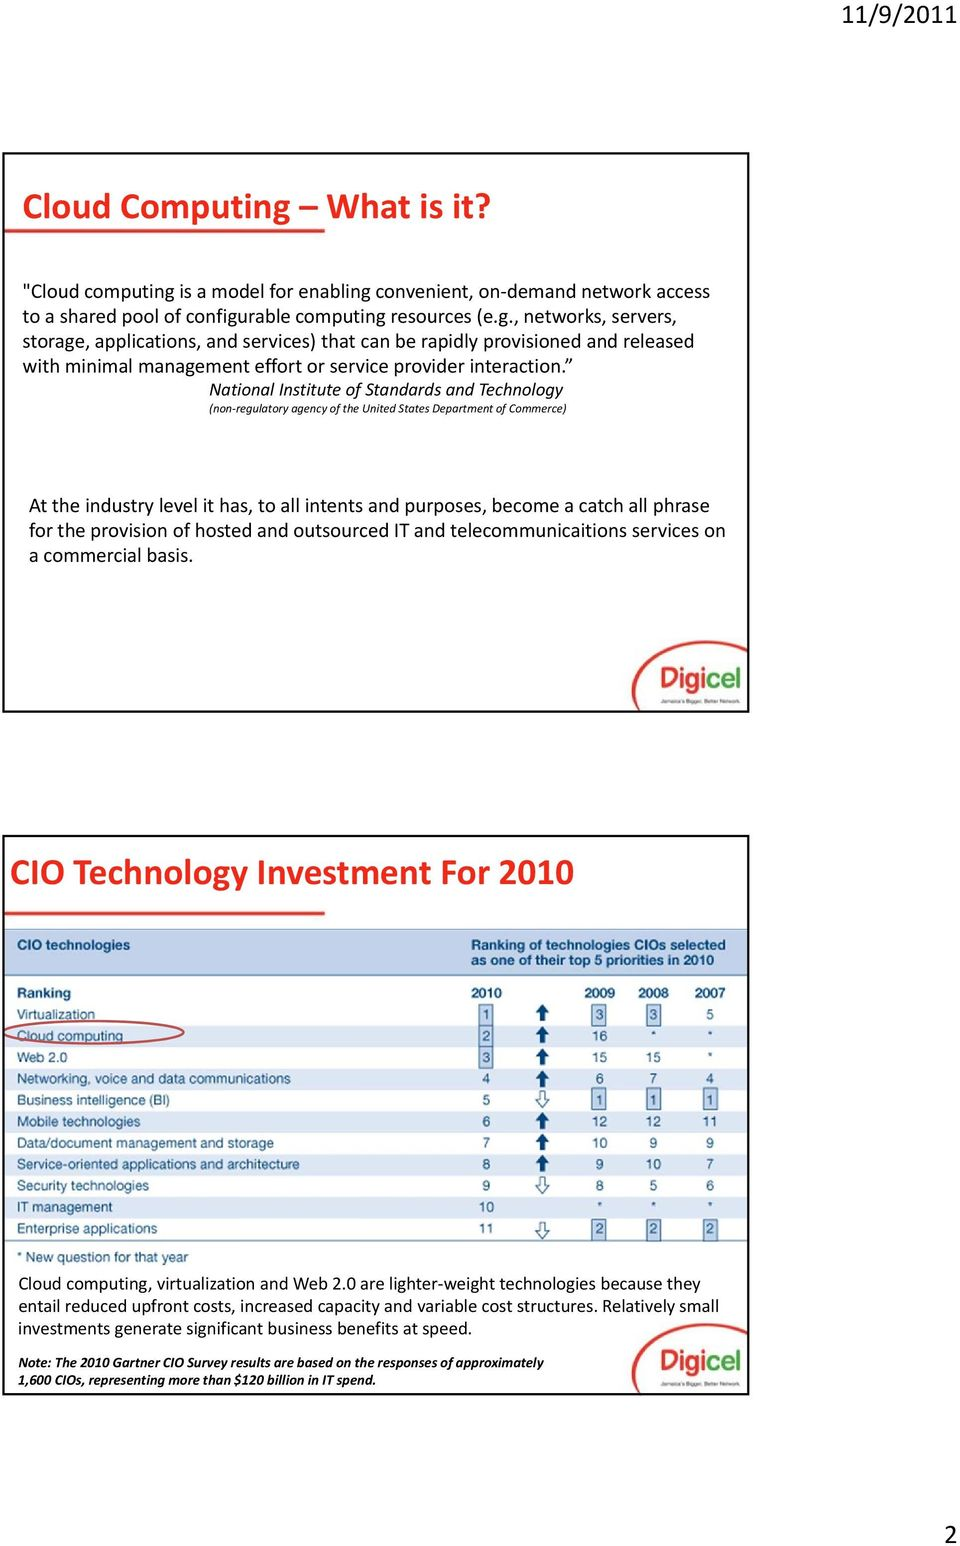 for the provision of hosted and outsourced IT and telecommunicaitions services on a commercial basis. CIO Technology Investment For 2010 computing, virtualization and Web 2.